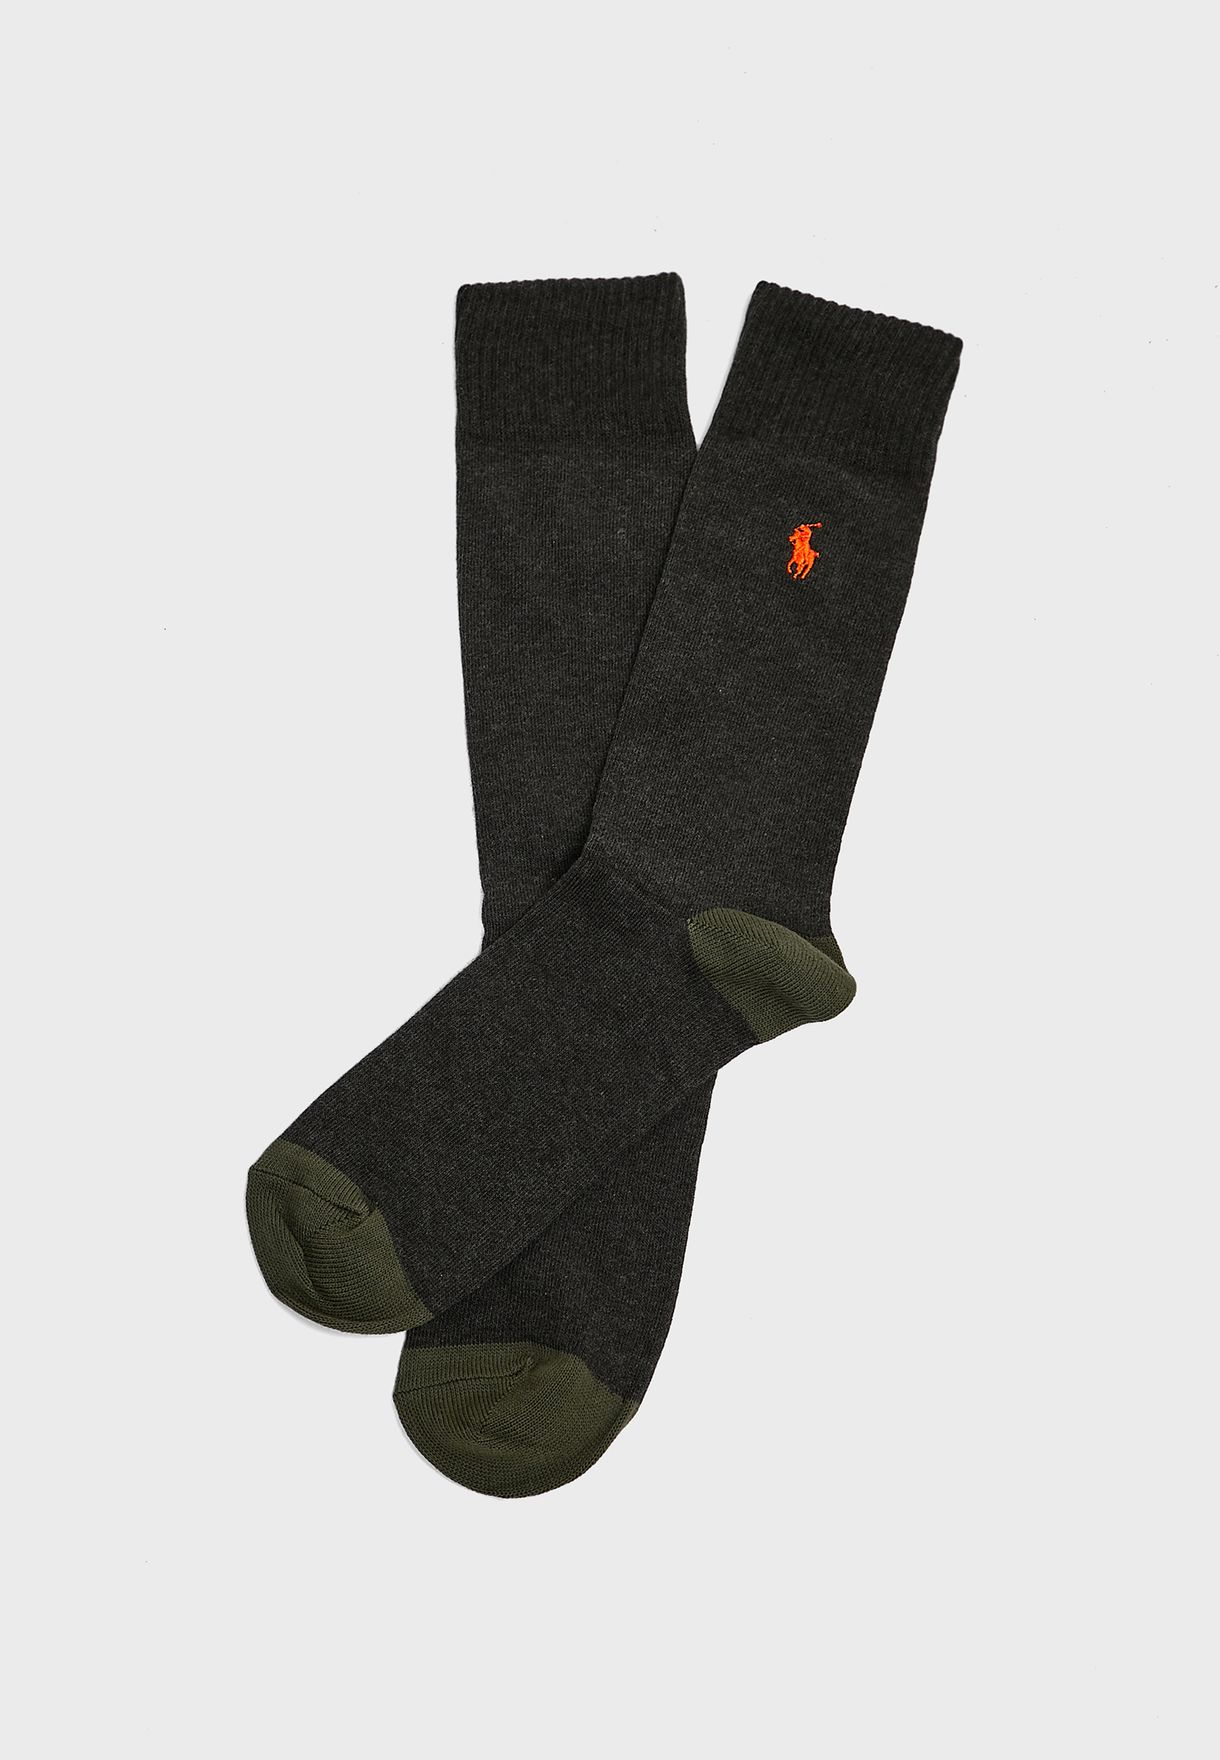 2 Pack Assorted Crew Socks